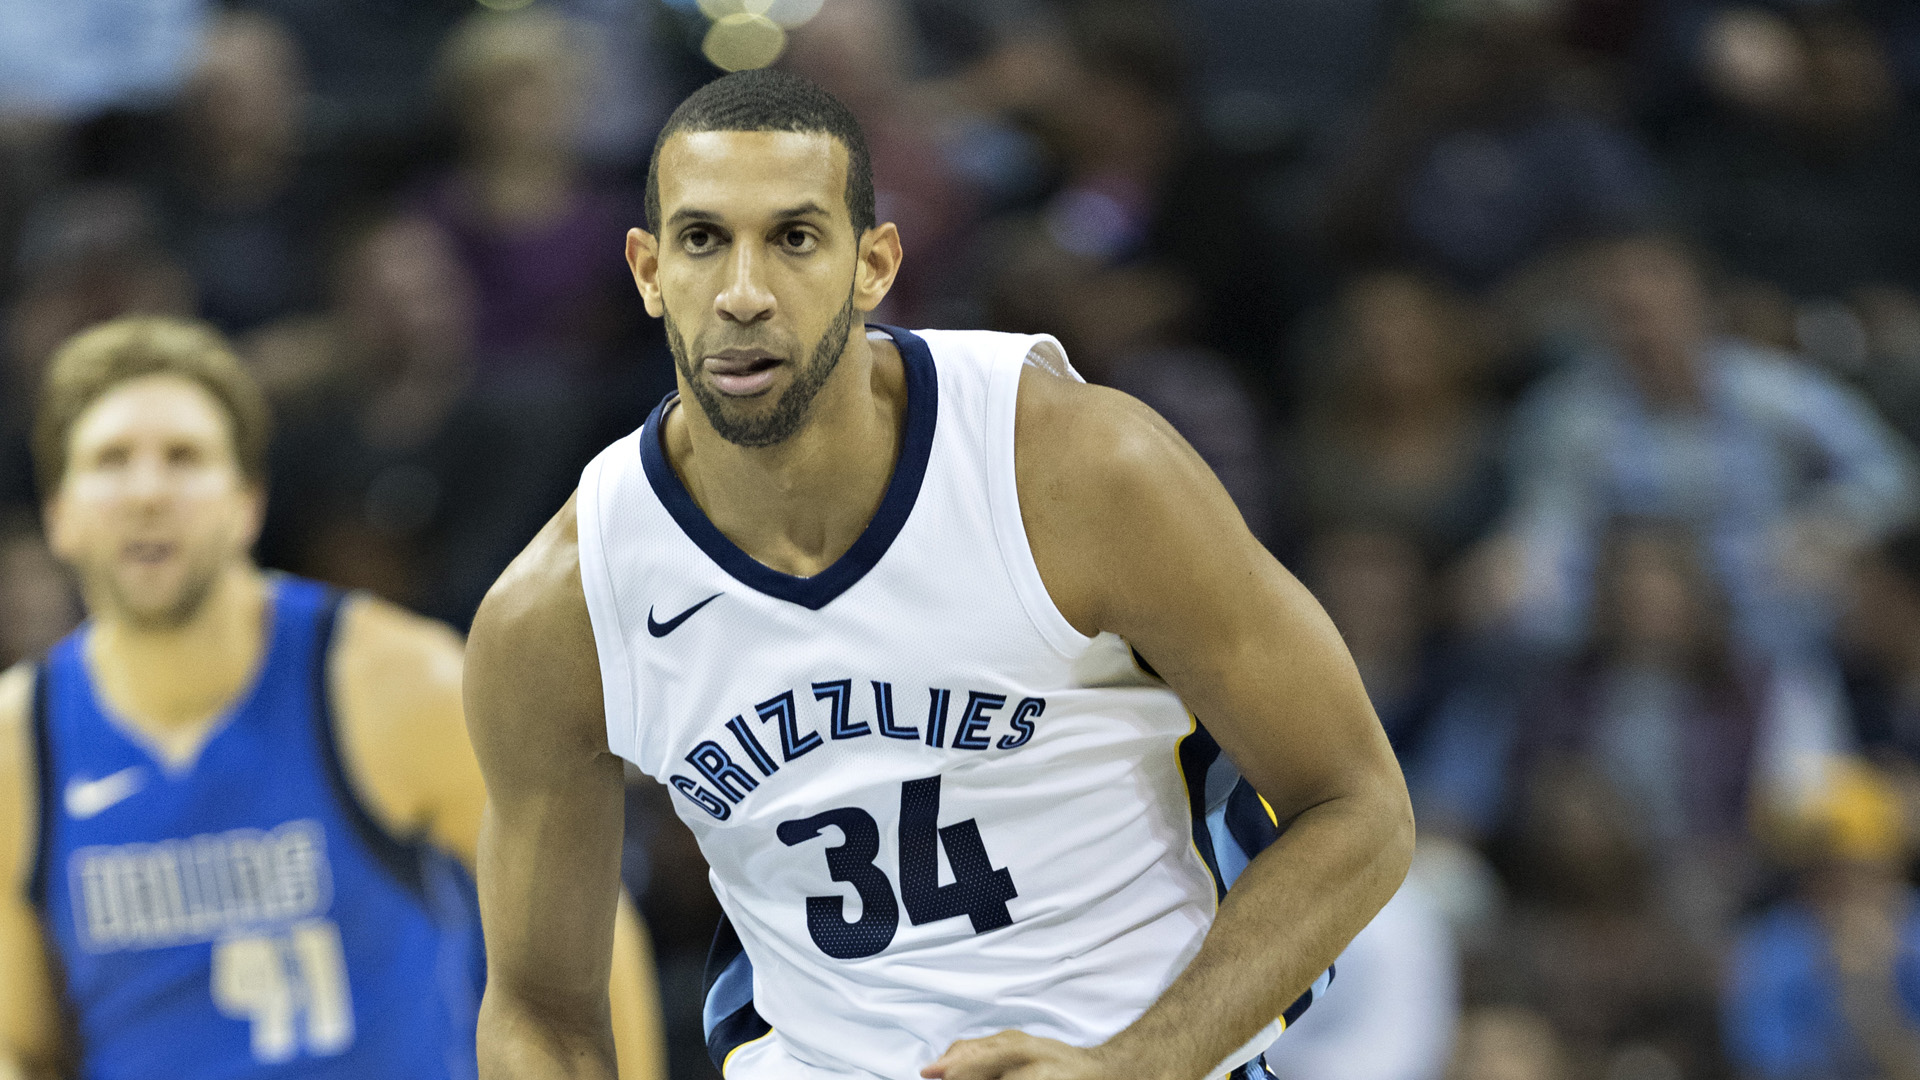 Rockets expected to sign Brandan Wright after buyout, per report